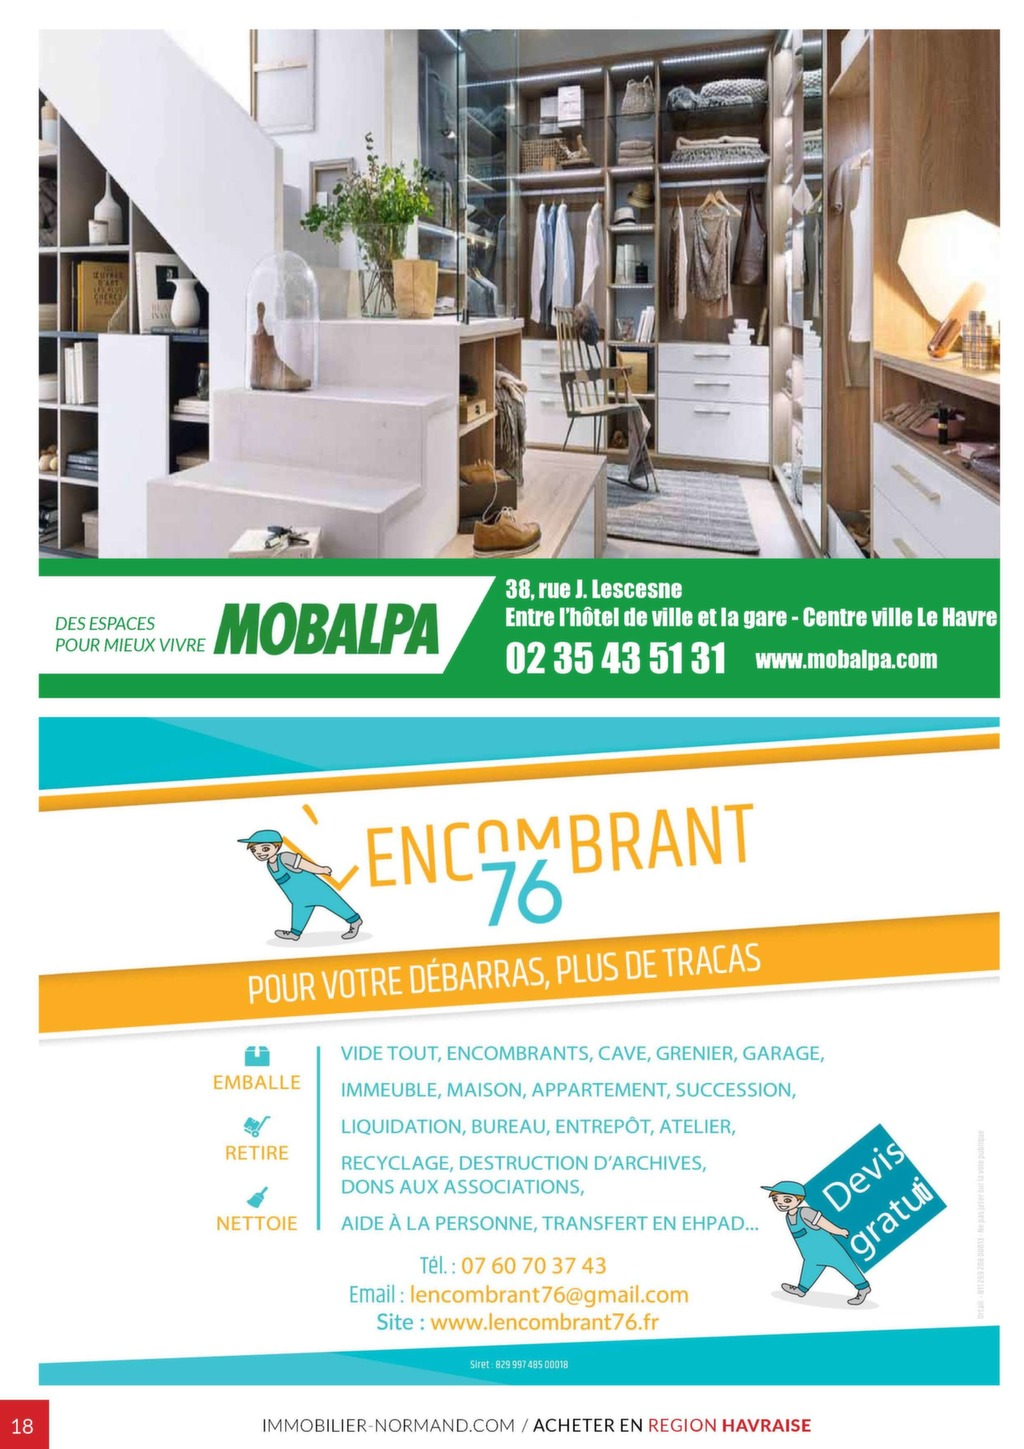 Mobalpa Le Havre en ce qui concerne immobilier normand n°44 - magazine immo